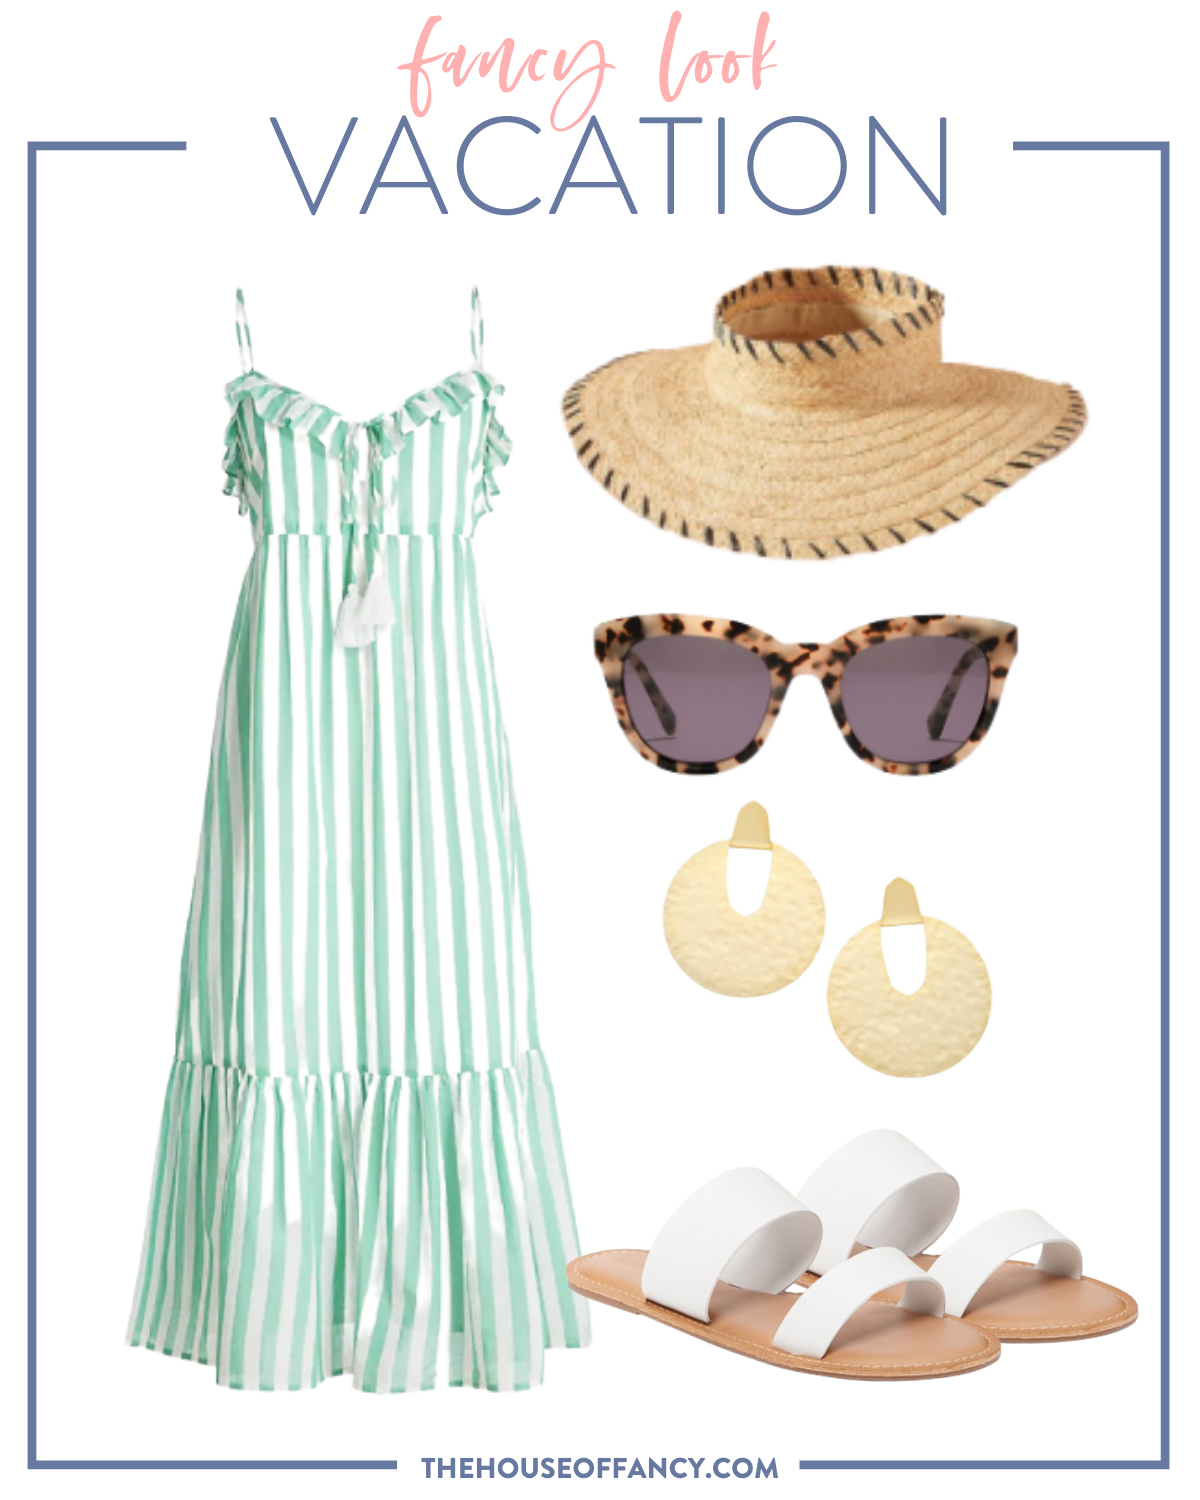 Summer Outfit Ideas by popular Houston fashion blog, The House of Fancy: collage image of white and green stripe maxi dress straw sunhat, tortoise shell frame sunglasses, gold statement earrings, white strap sandals.